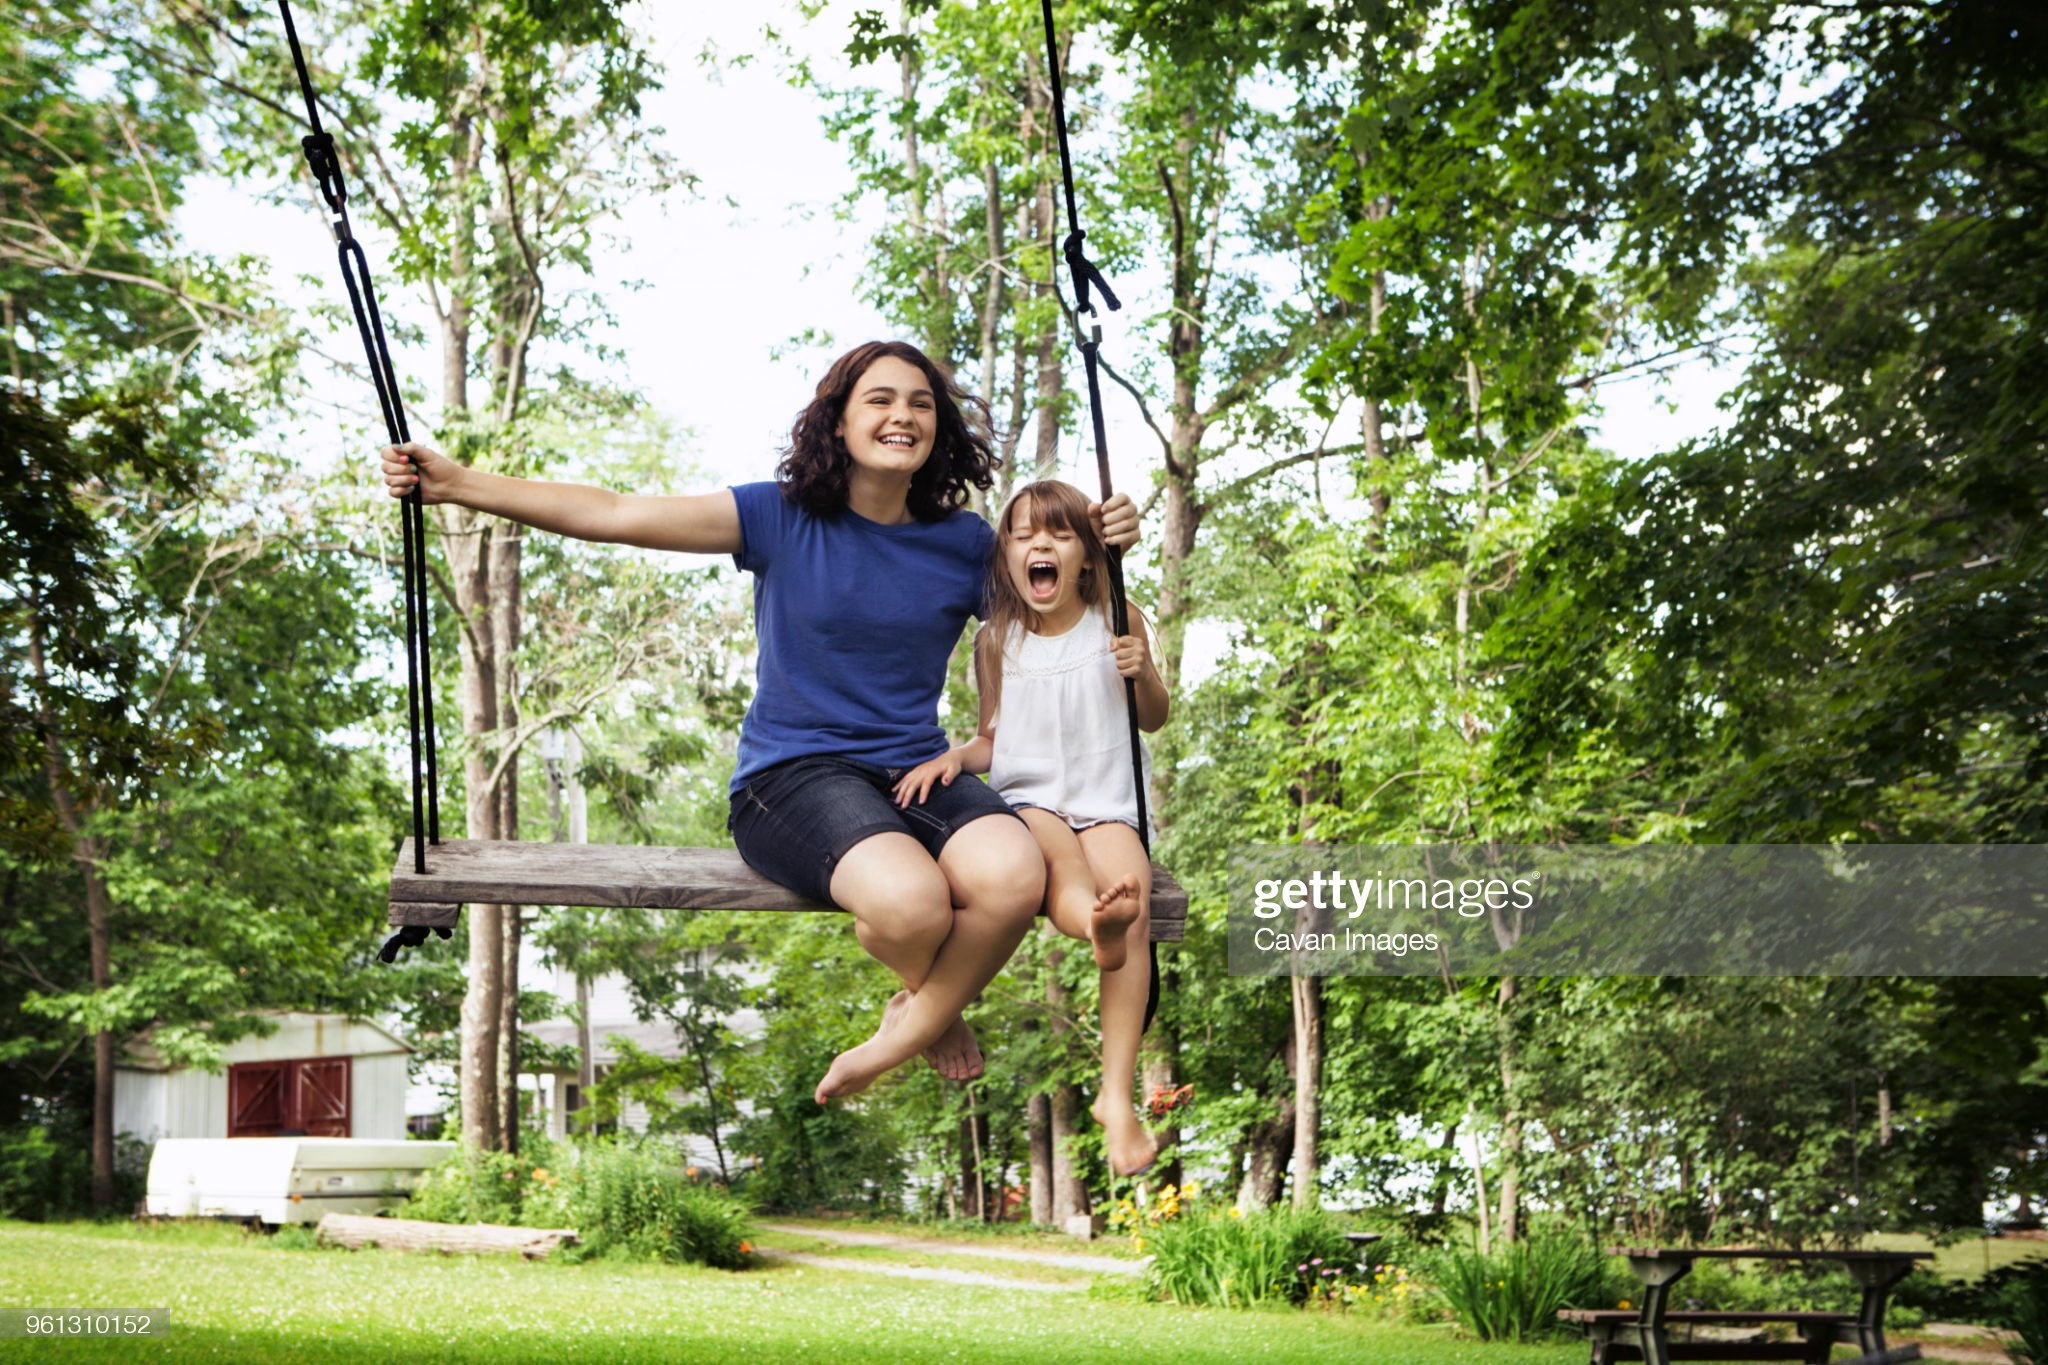 https://media.gettyimages.com/photos/sisters-playing-on-swing-at-park-picture-id961310152?s=2048x2048